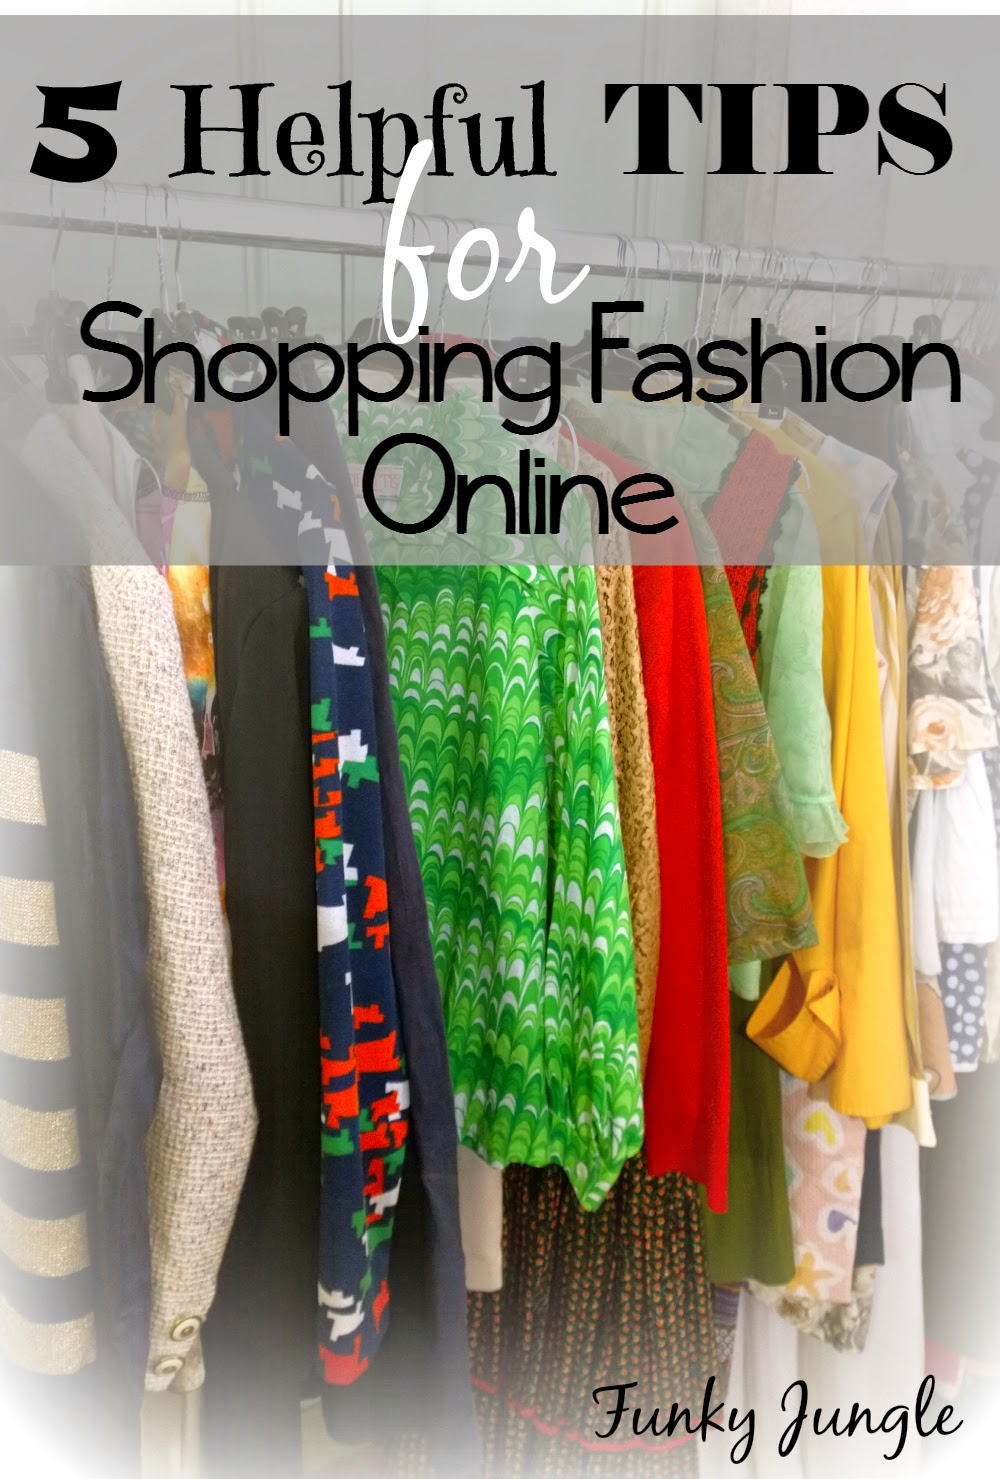 Tips for Shopping Fashion Online to help limit mispurchases for items you cannot touch or try on before you pay | 5 Tips for better Online Shopping || Funky Jungle, fashion and personal style blog